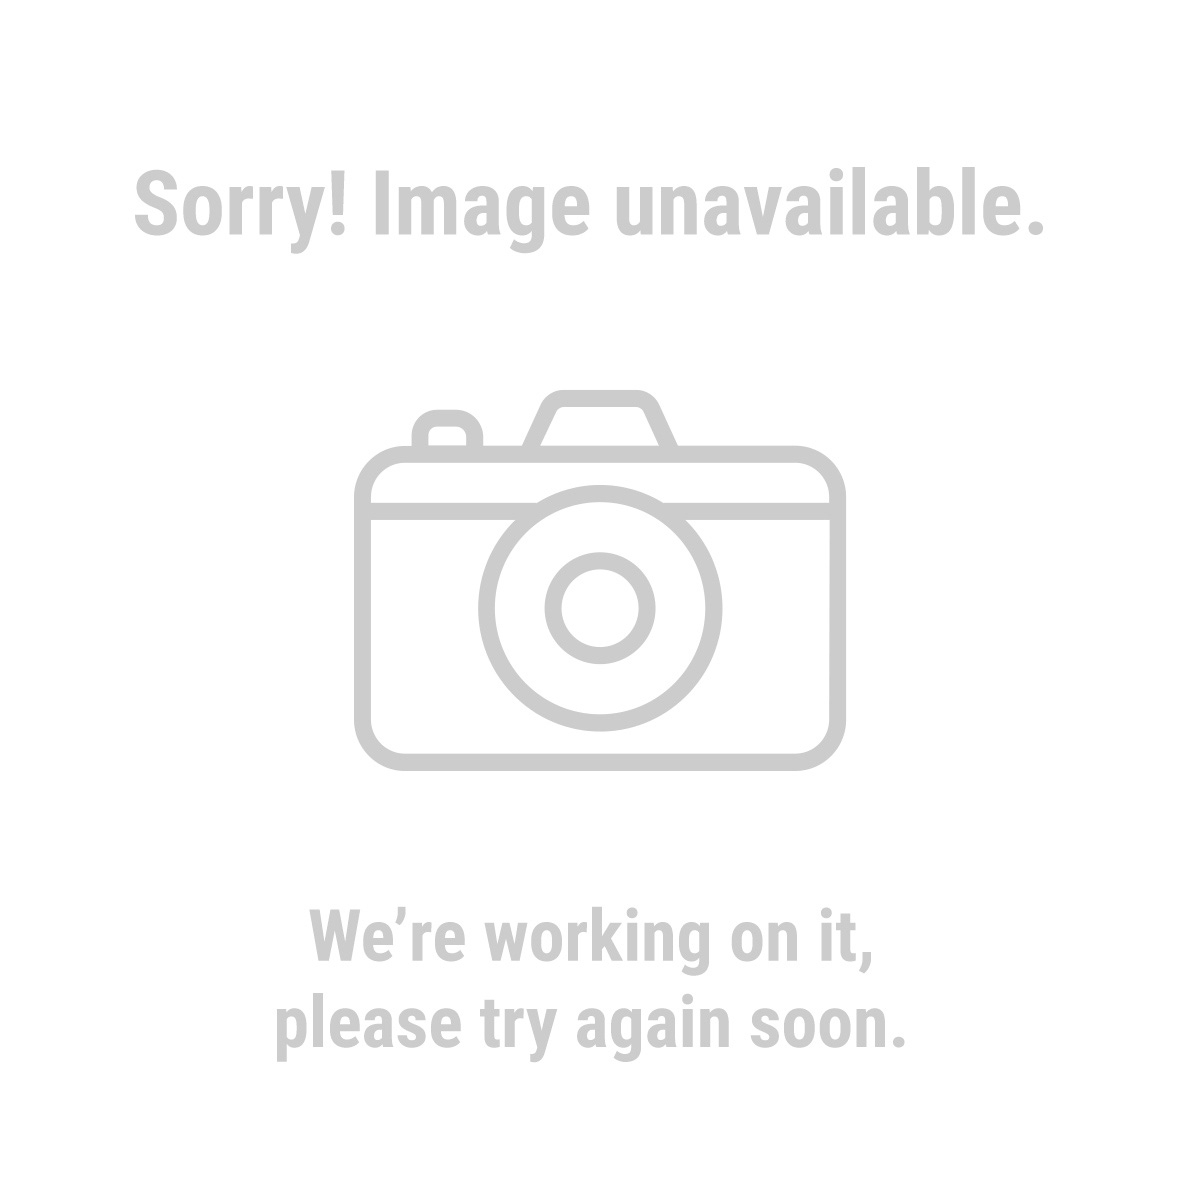 Bunker Hill Security® 60498 36 LED Solar Security Light